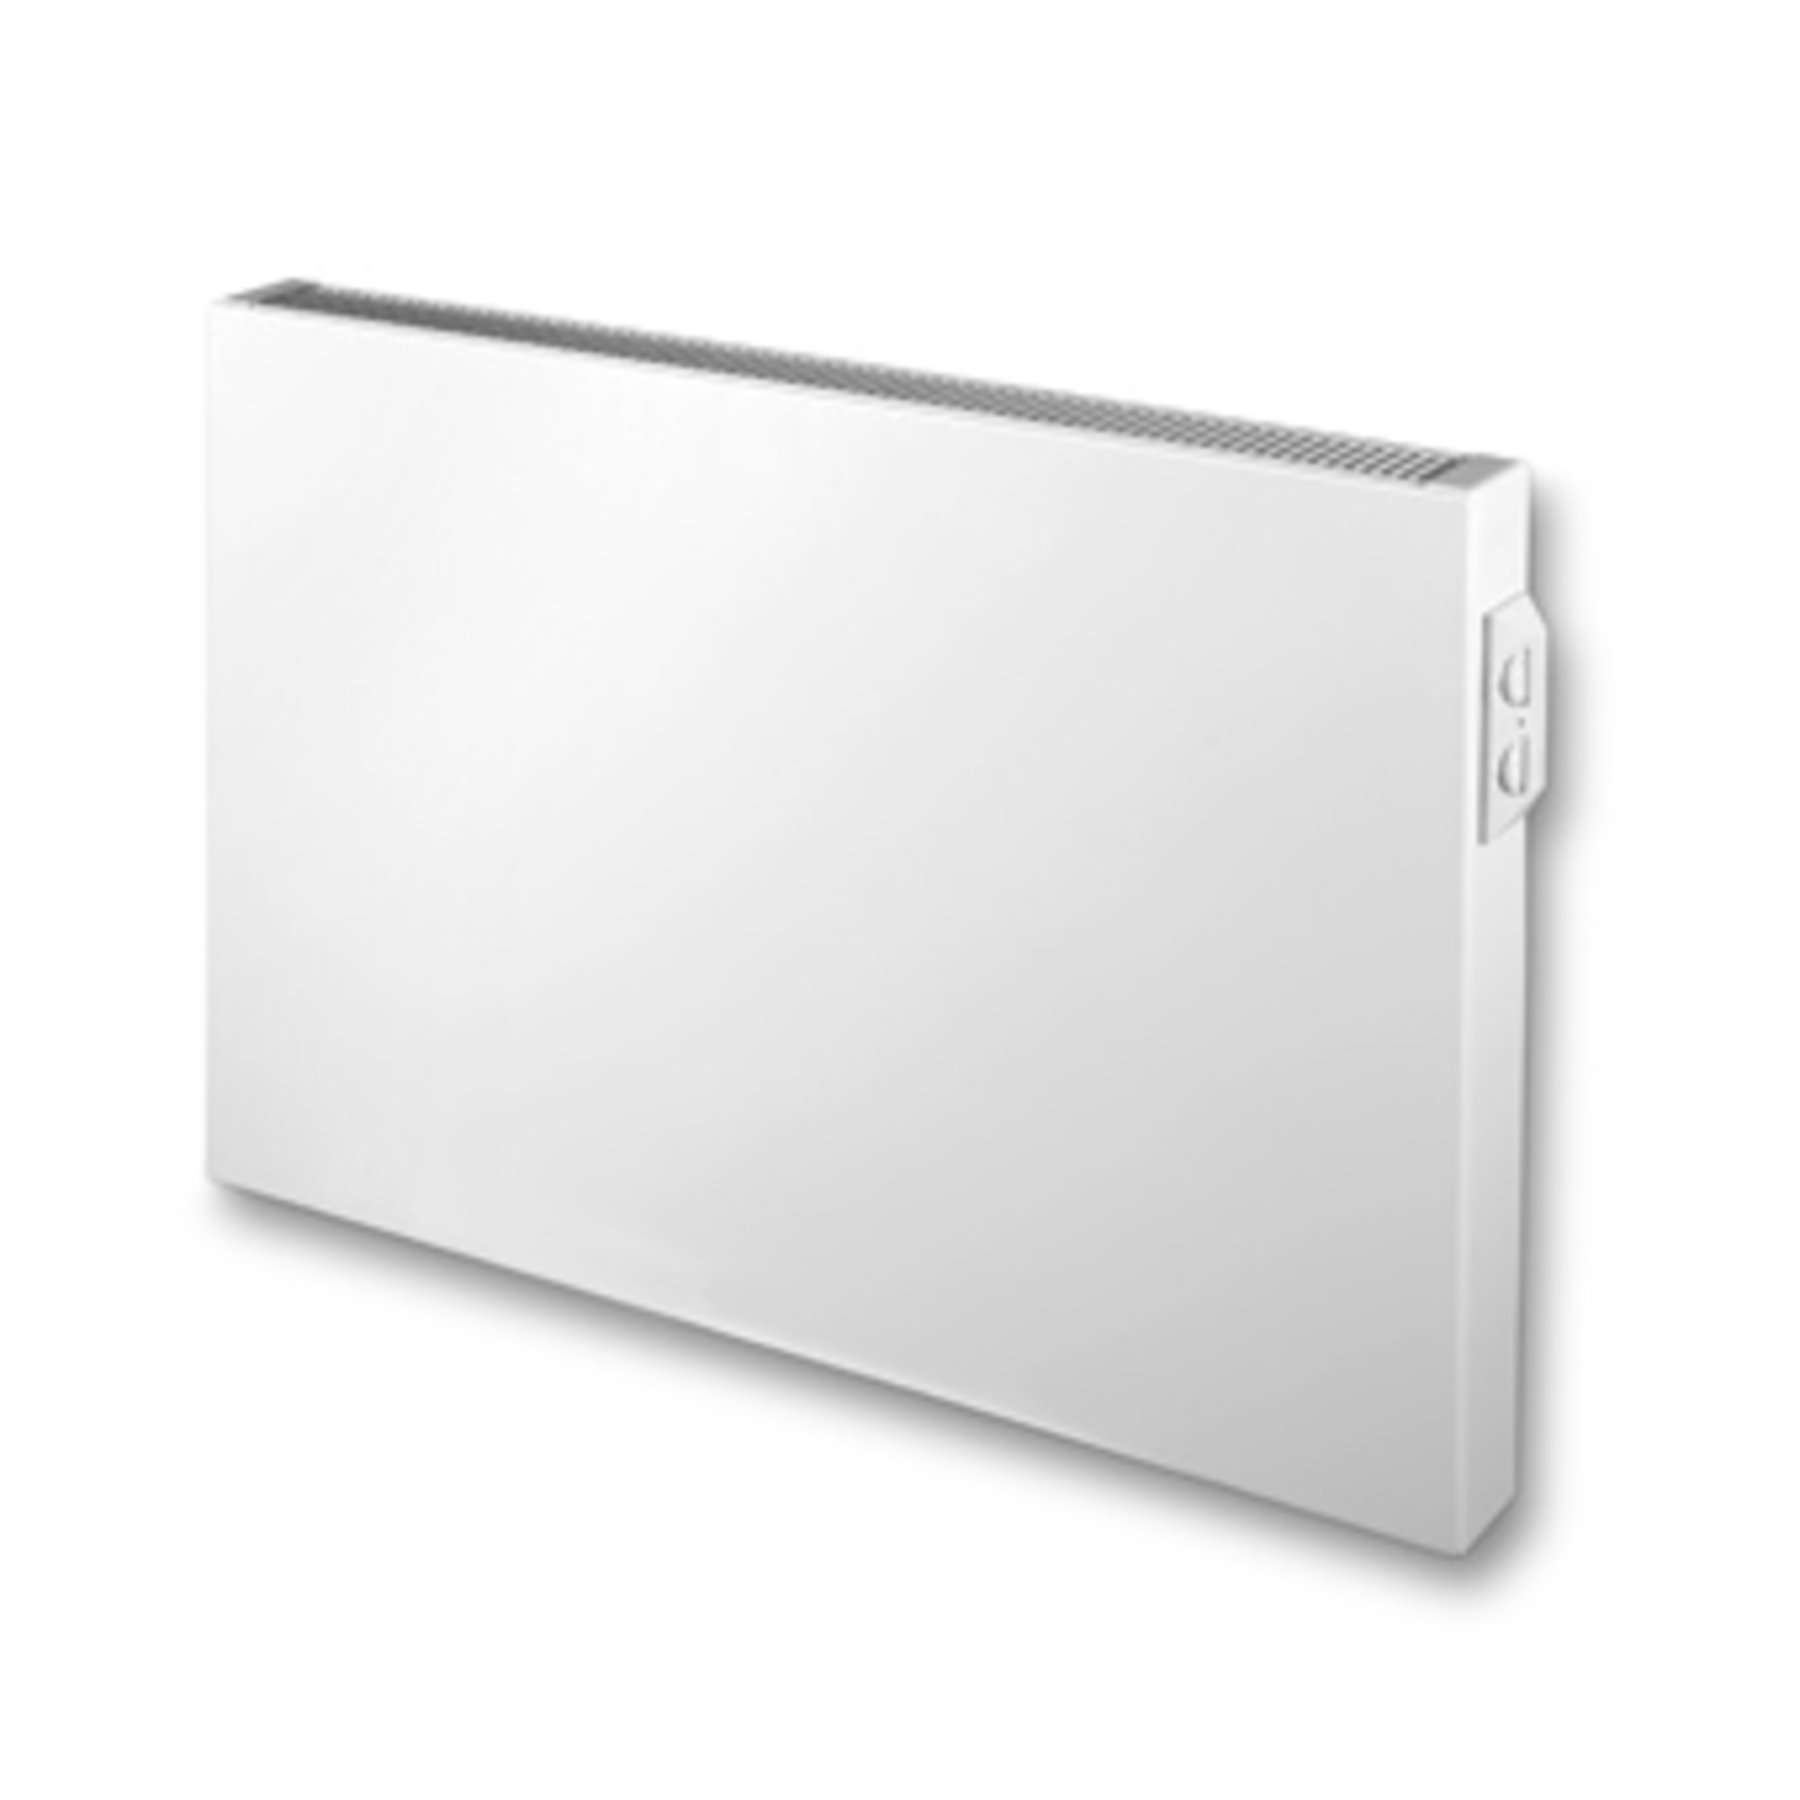 Vasco E panel radiator elektrisch 500x600mm 500 watt wit